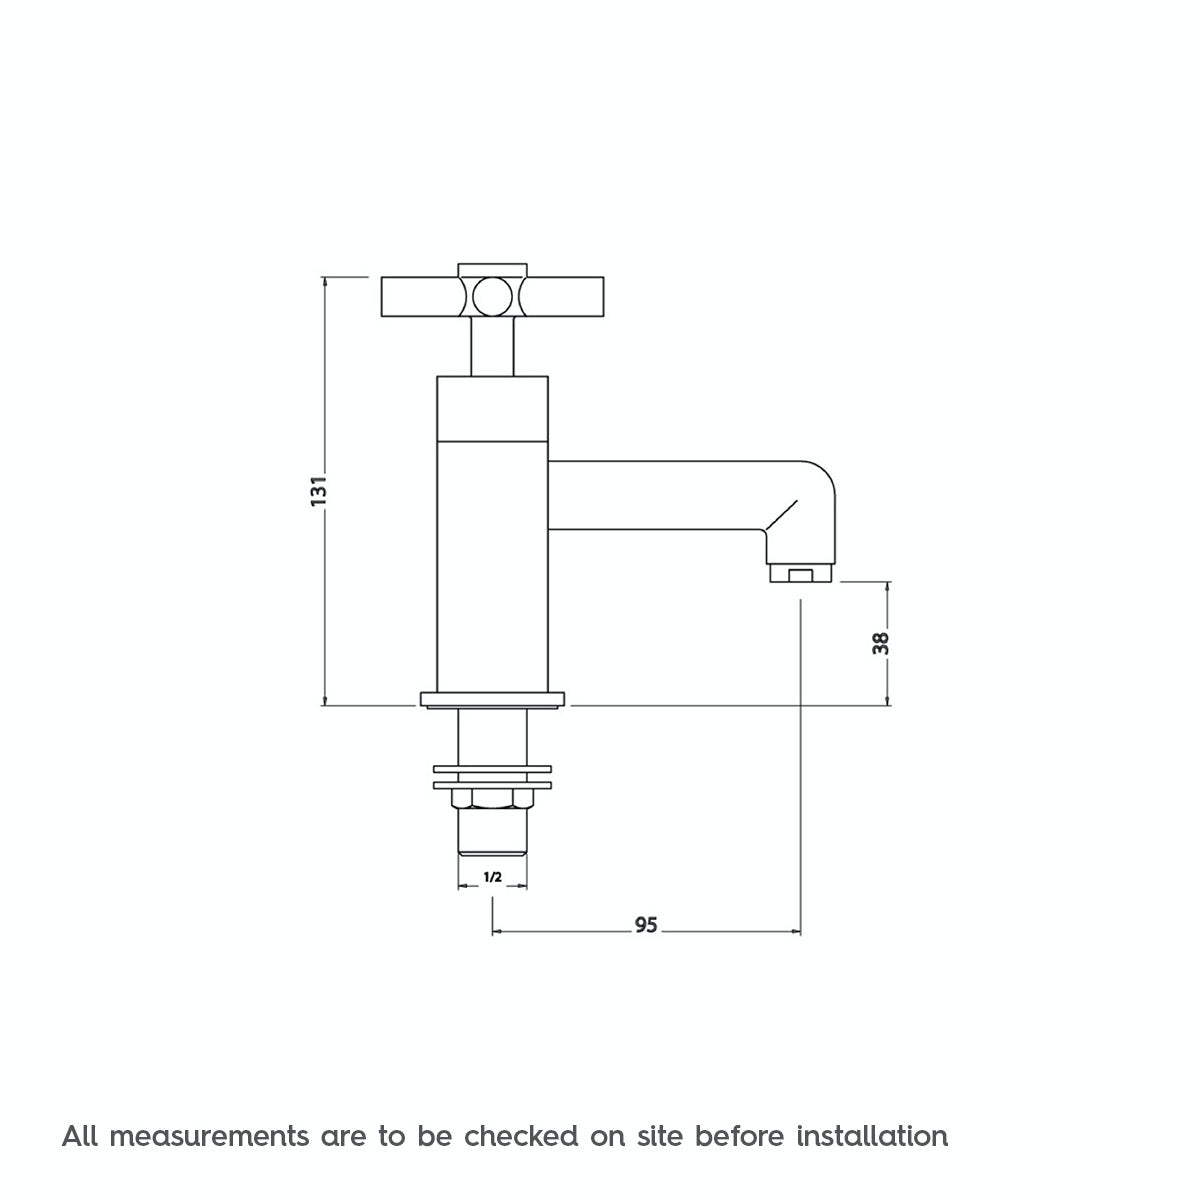 Dimensions for Mode Tate basin pillar taps